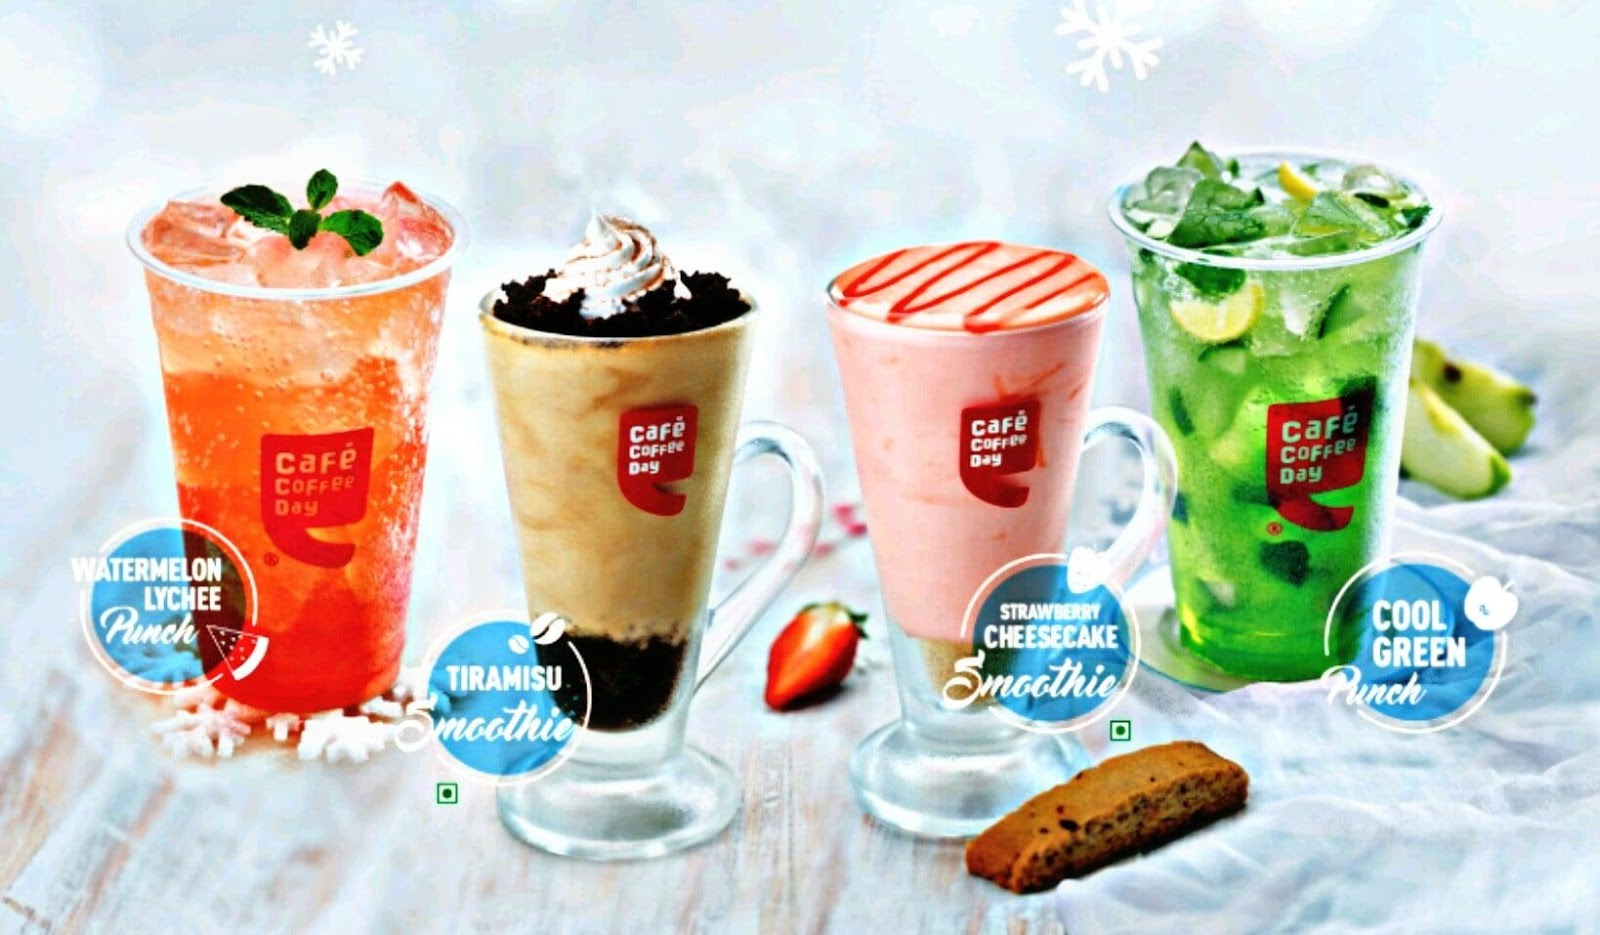 Cdgl Cafe Coffee Day